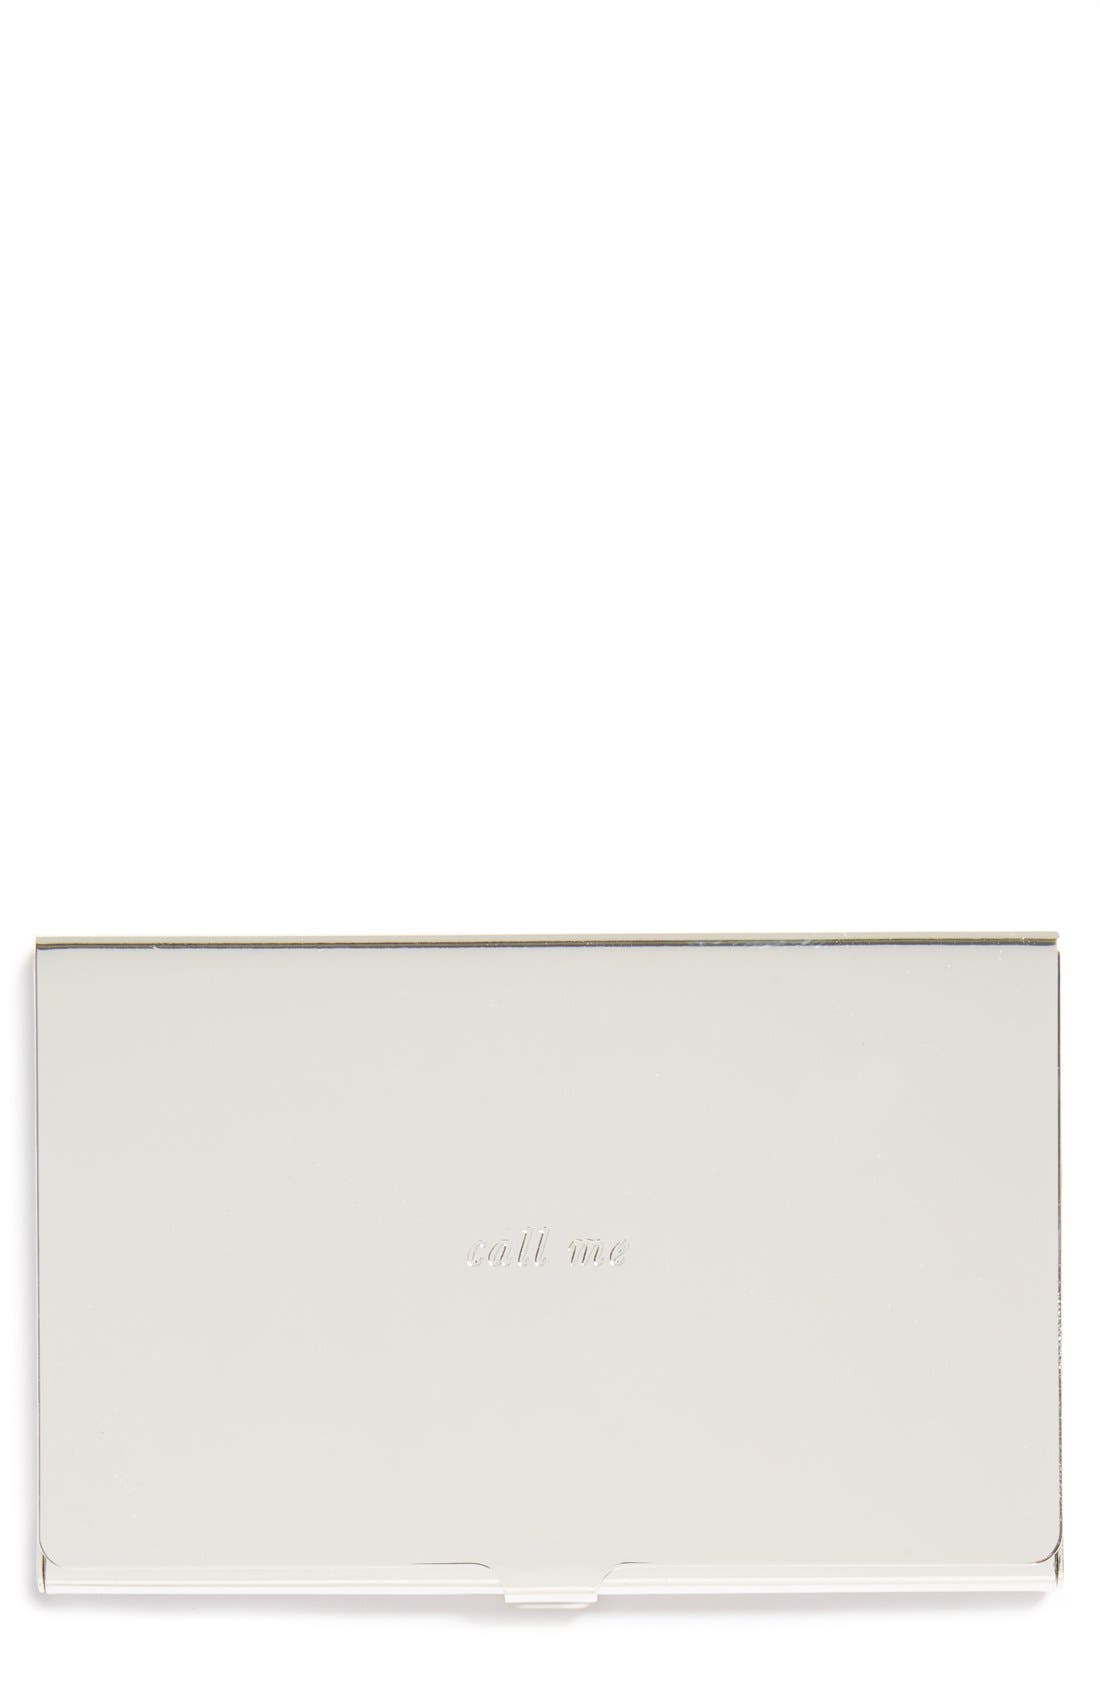 Main Image - kate spade new york 'call me' business card holder